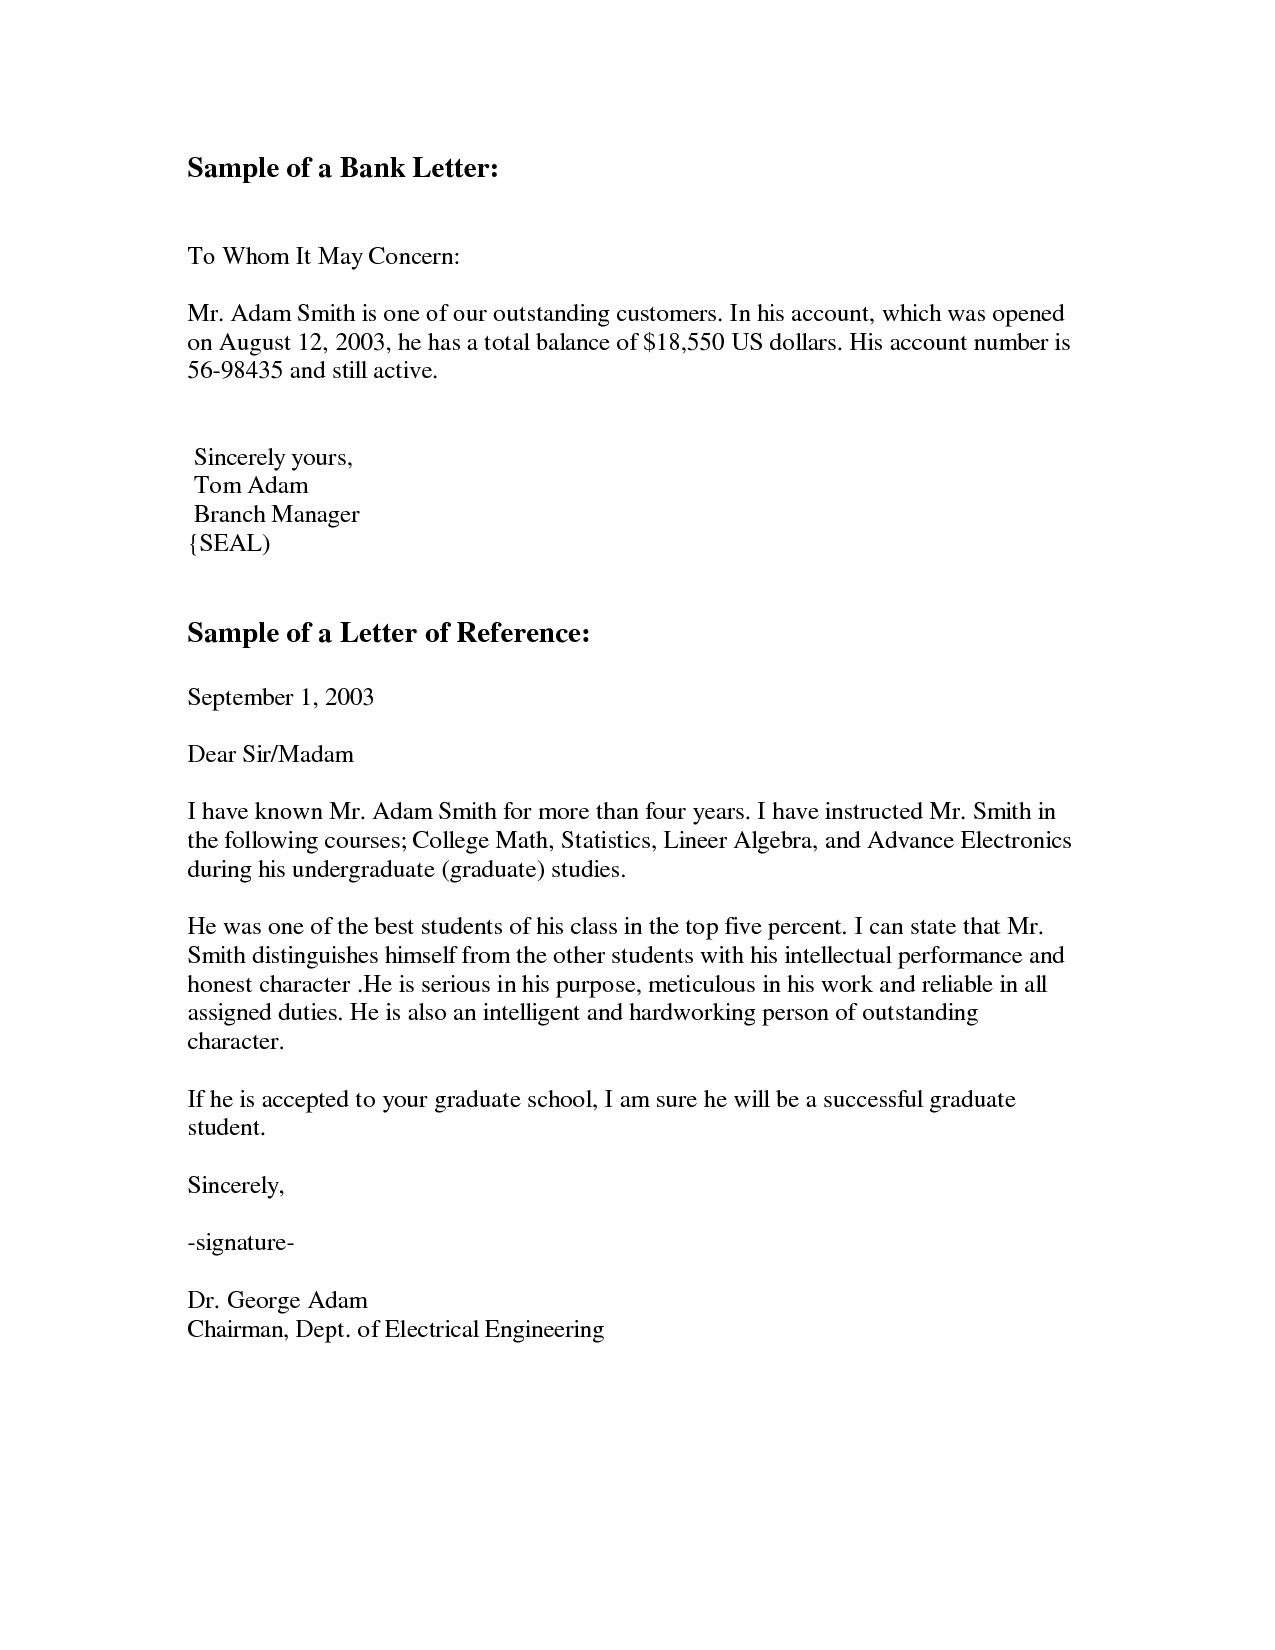 letter outline template Collection-Letter Outline Template Bank Letter format formal Letter Template Unique bylaws Template 0d Rejection Letter 17-l